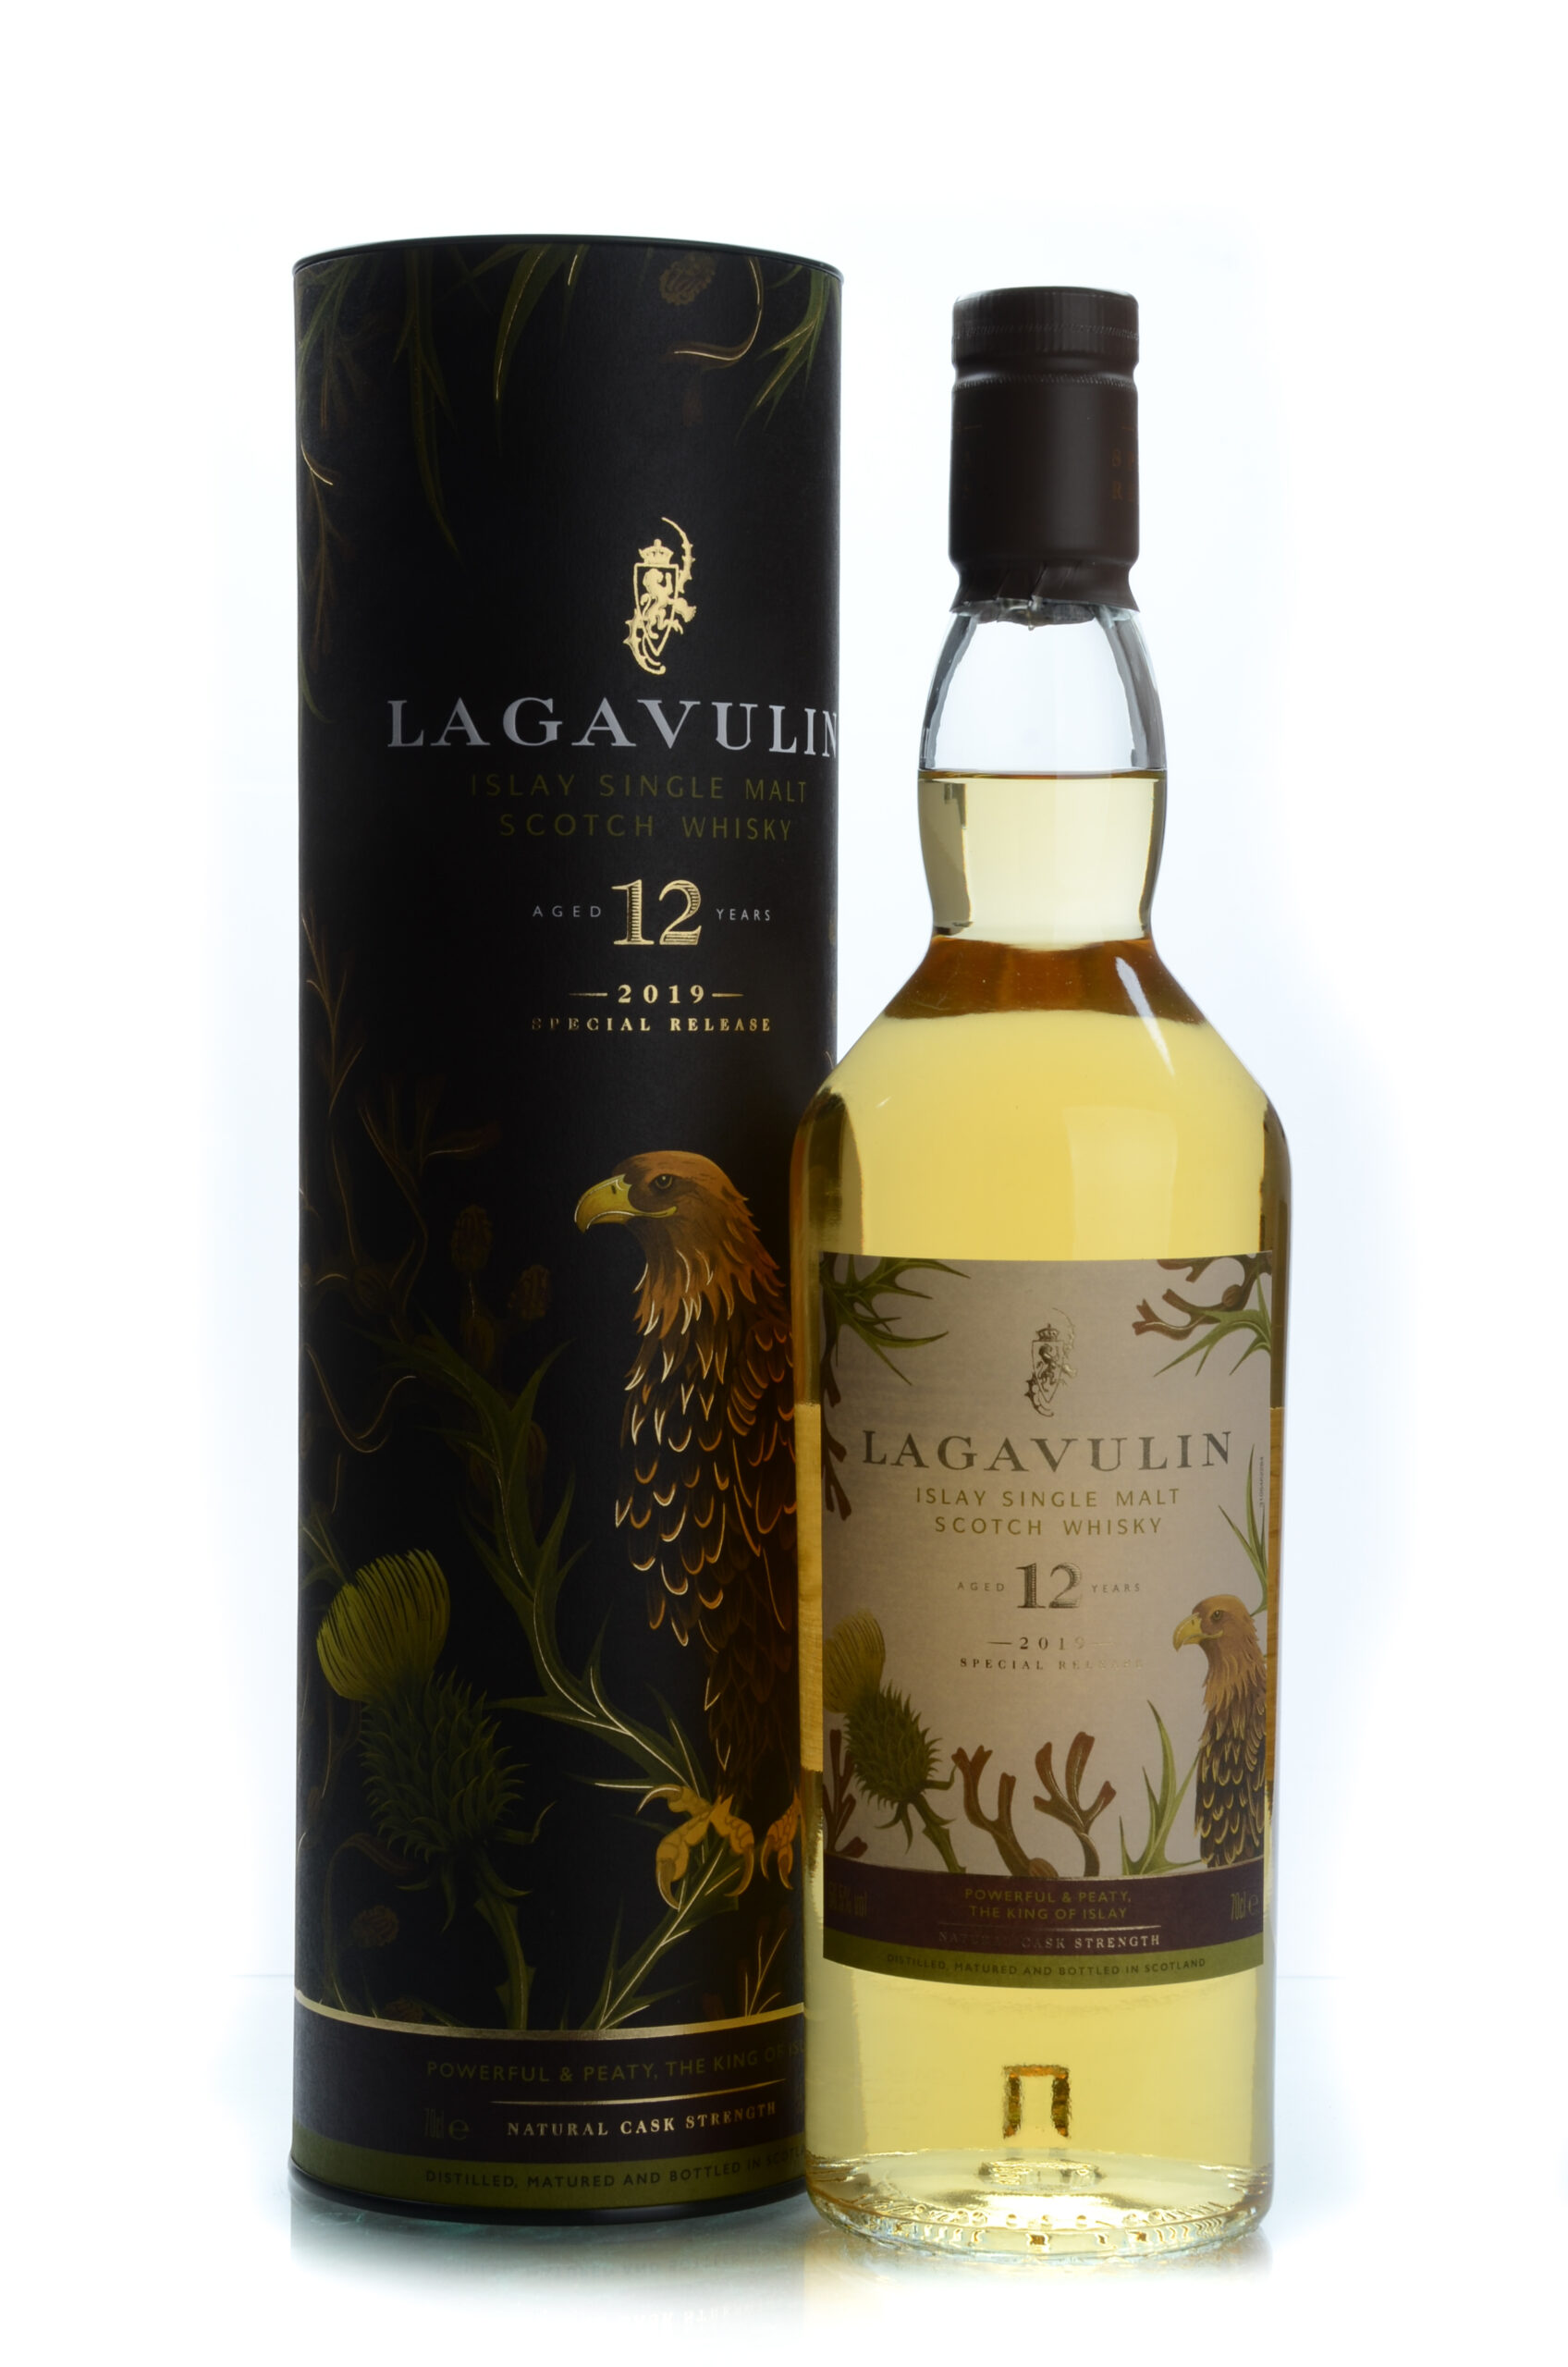 Lagavulin 12 years